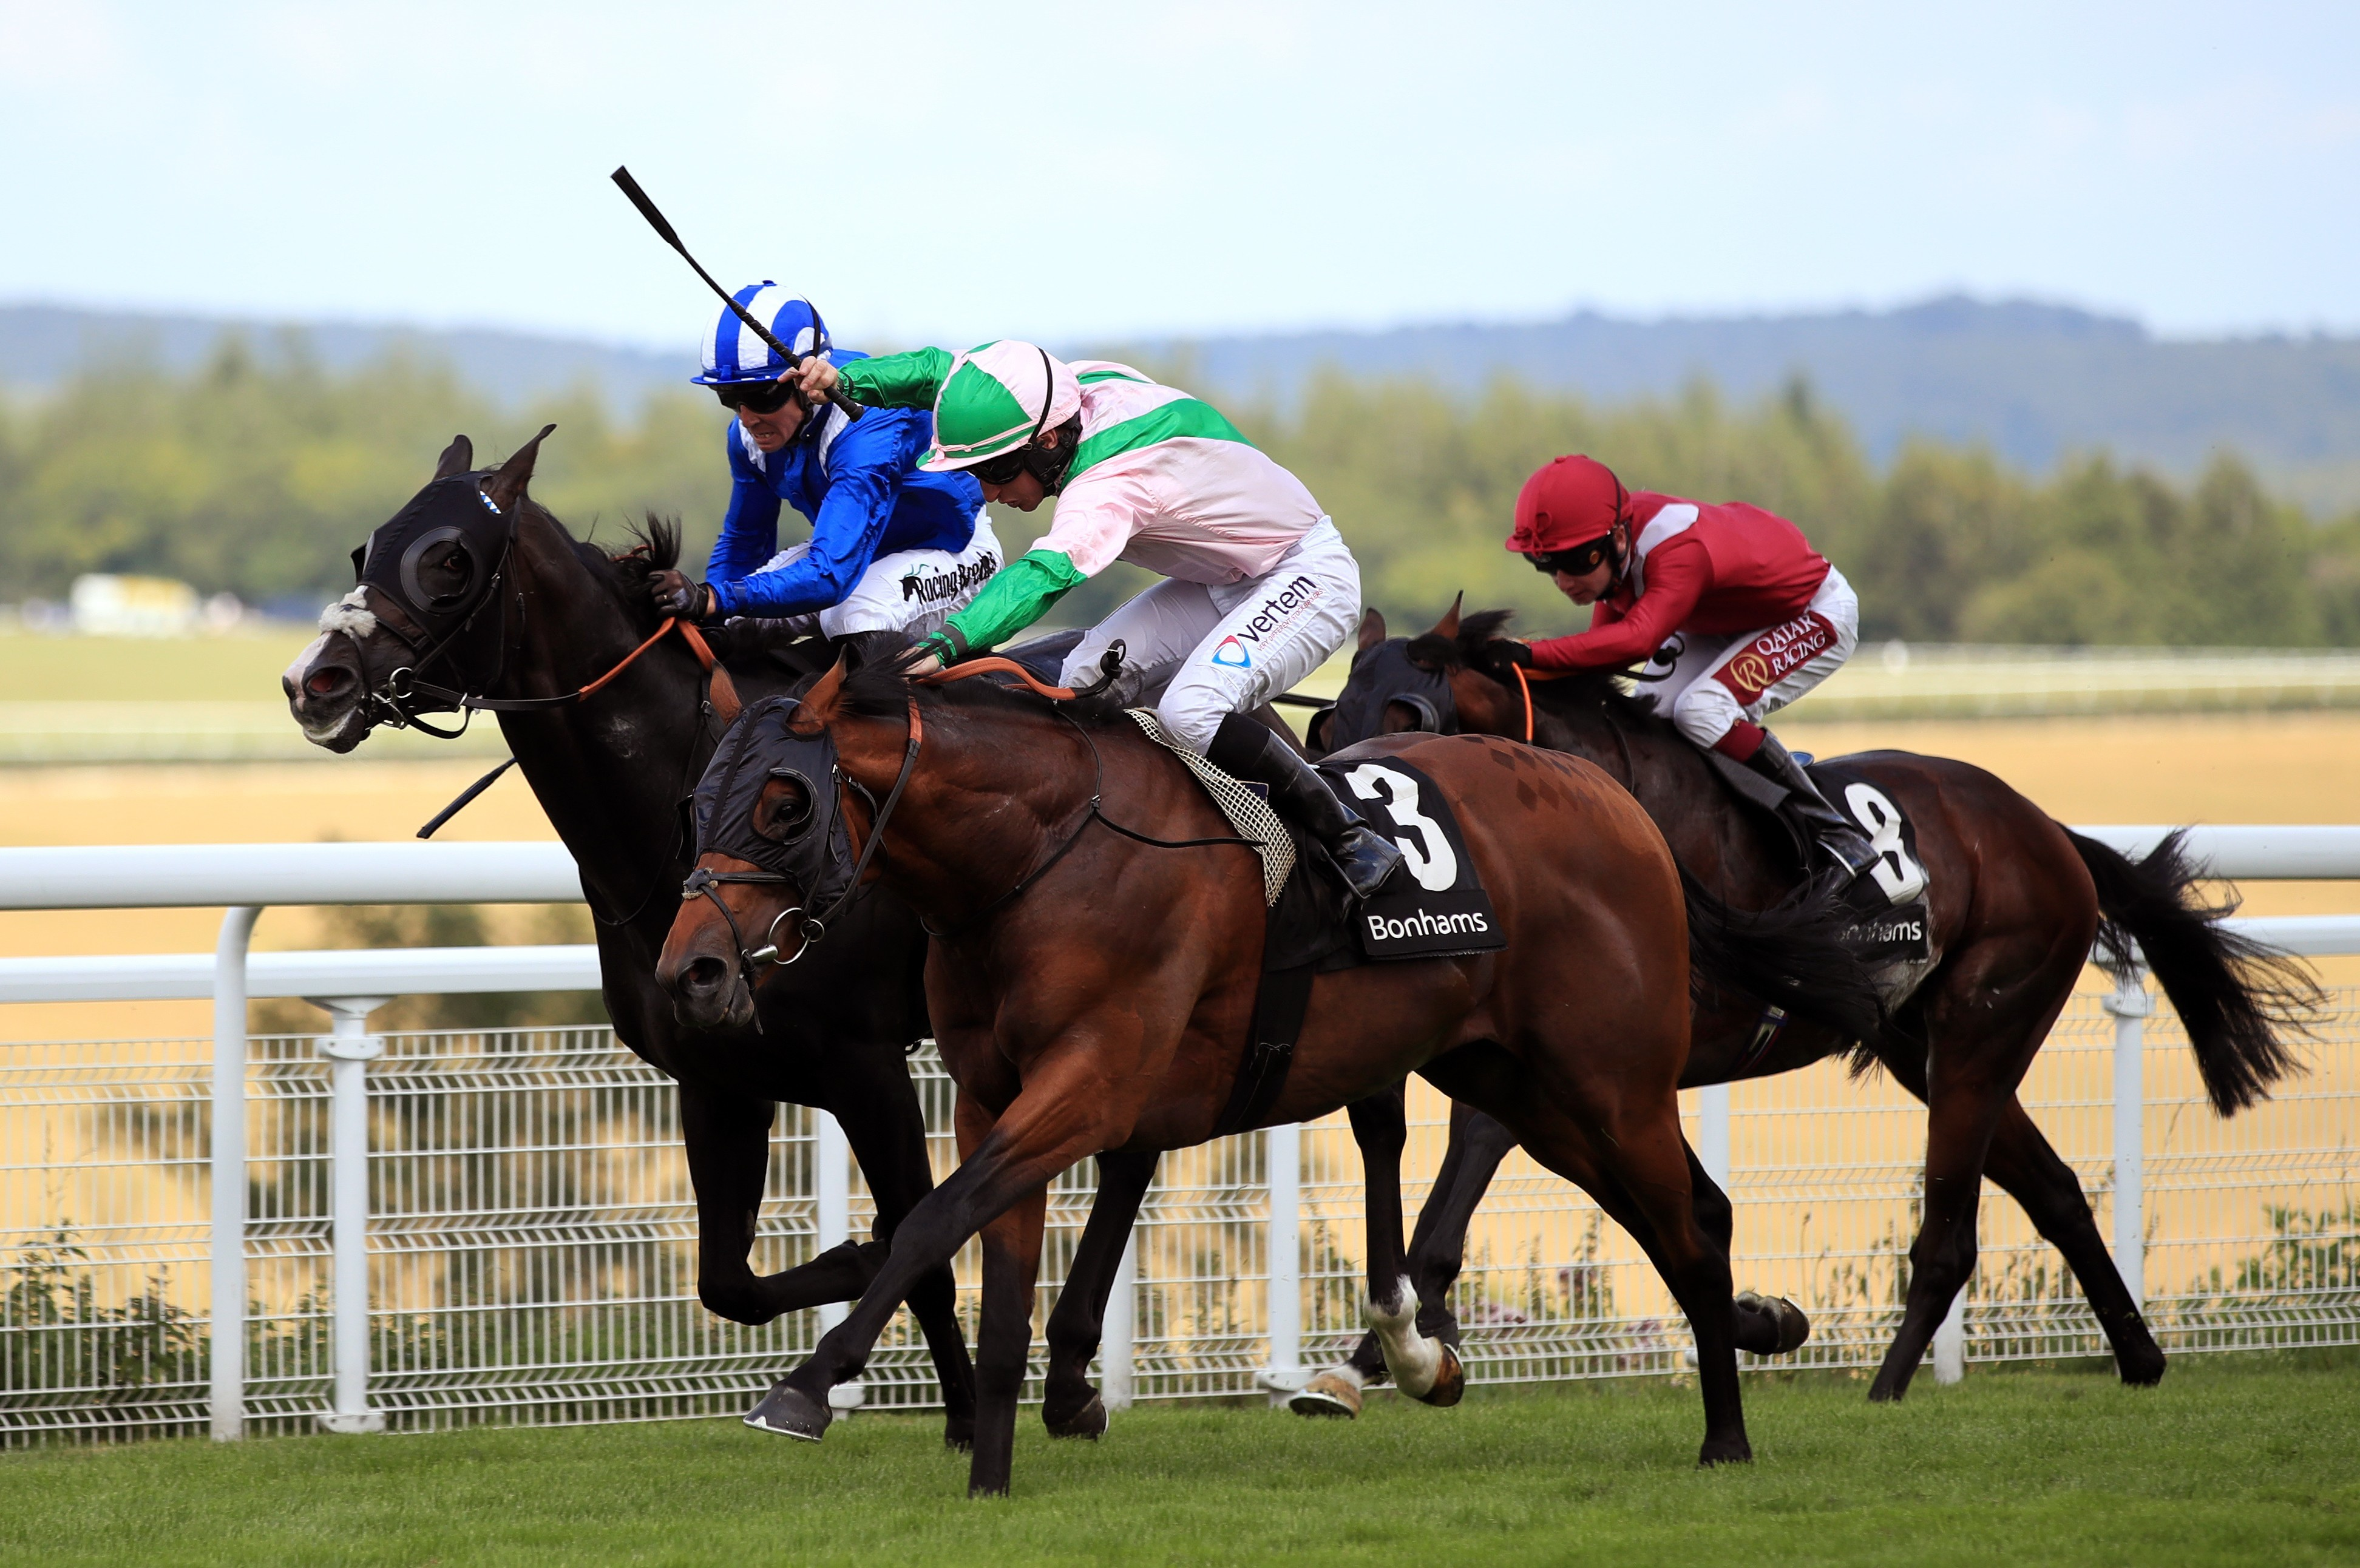 THOROUGHBRED STAKES (GR3) - Duke of Hazzard remporte le combat des œillères